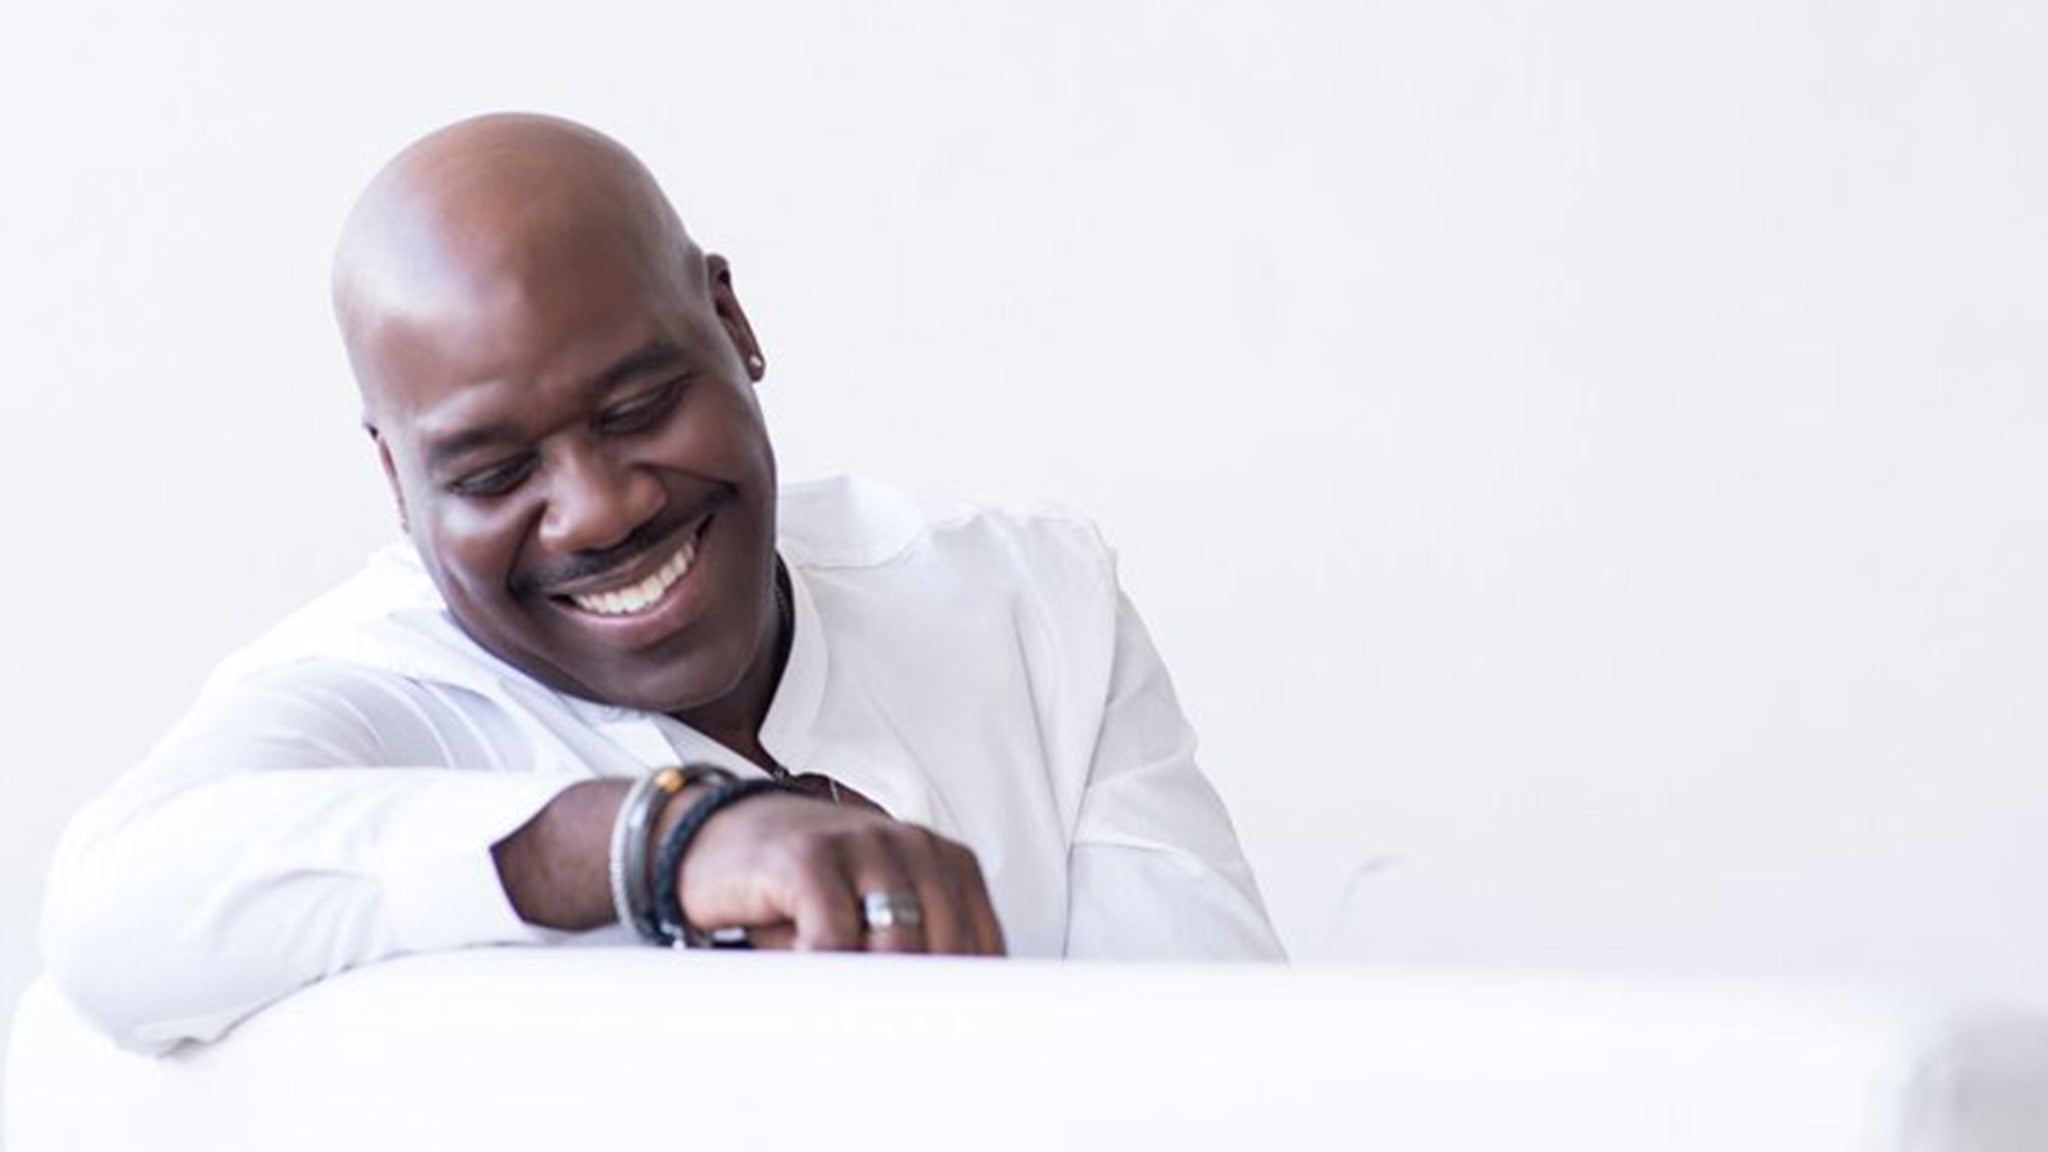 Will Downing at Cobb Energy Performing Arts Centre